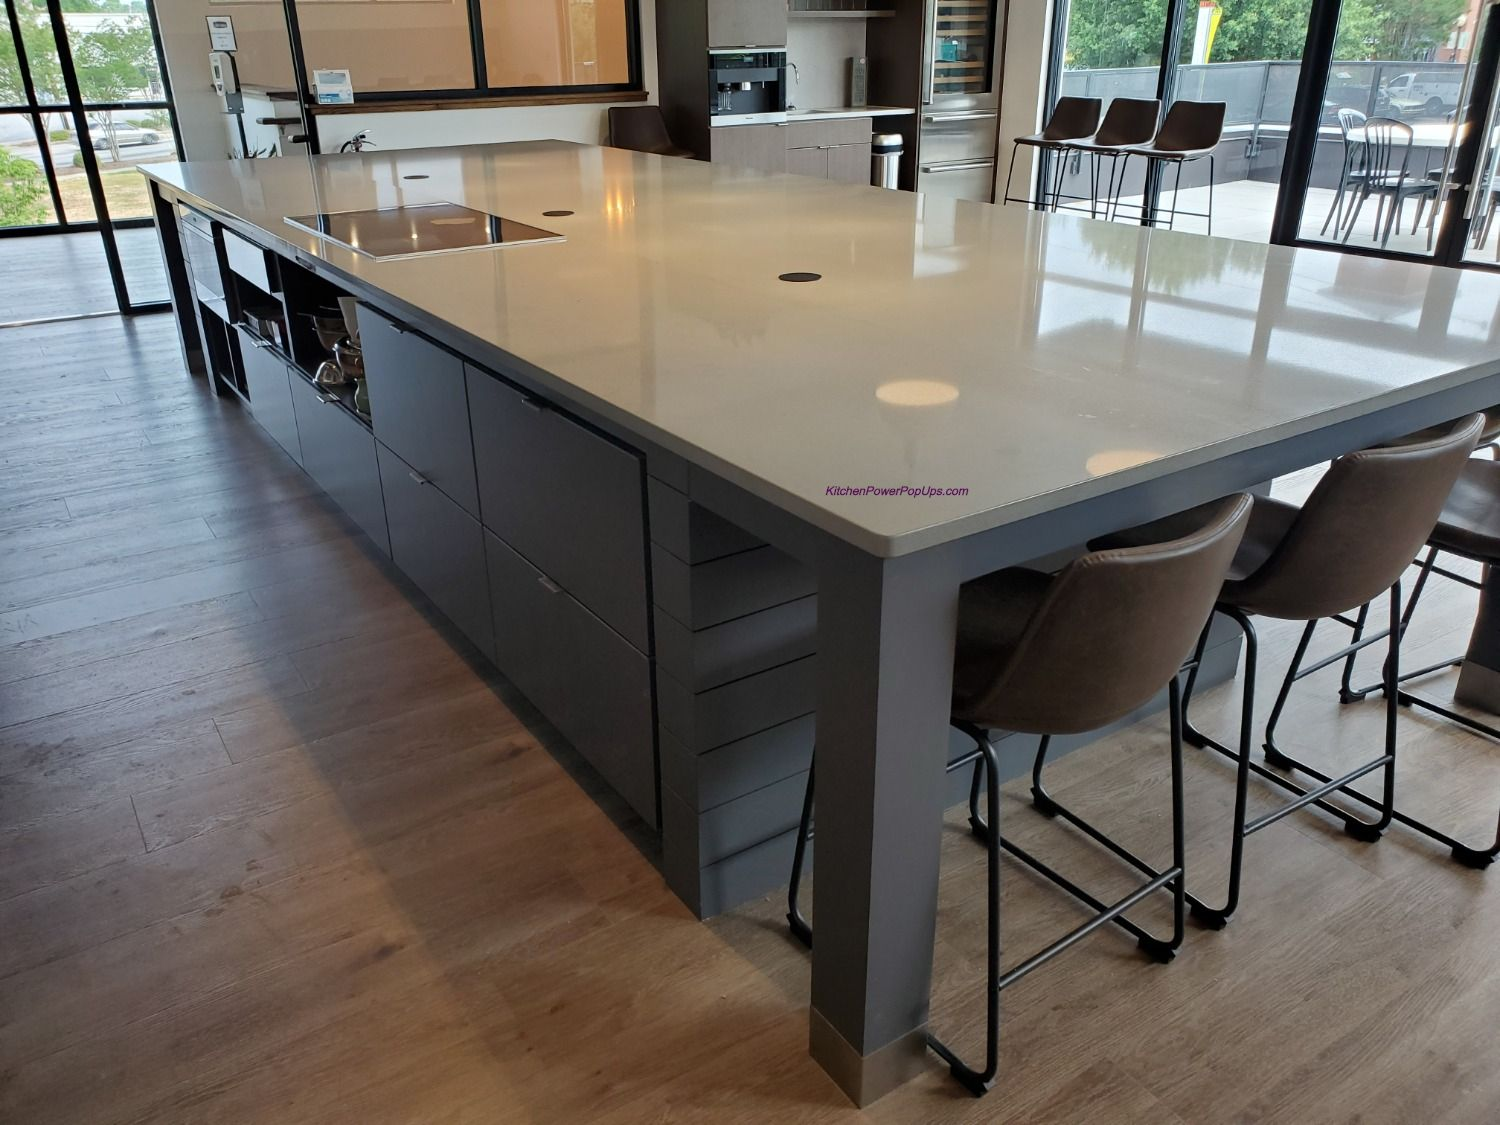 Countertop 2 Sided Spill Proof Pop Up 20a Outlet Flush Mount Black Countertops Huge Kitchen Modern Farmhouse Kitchens